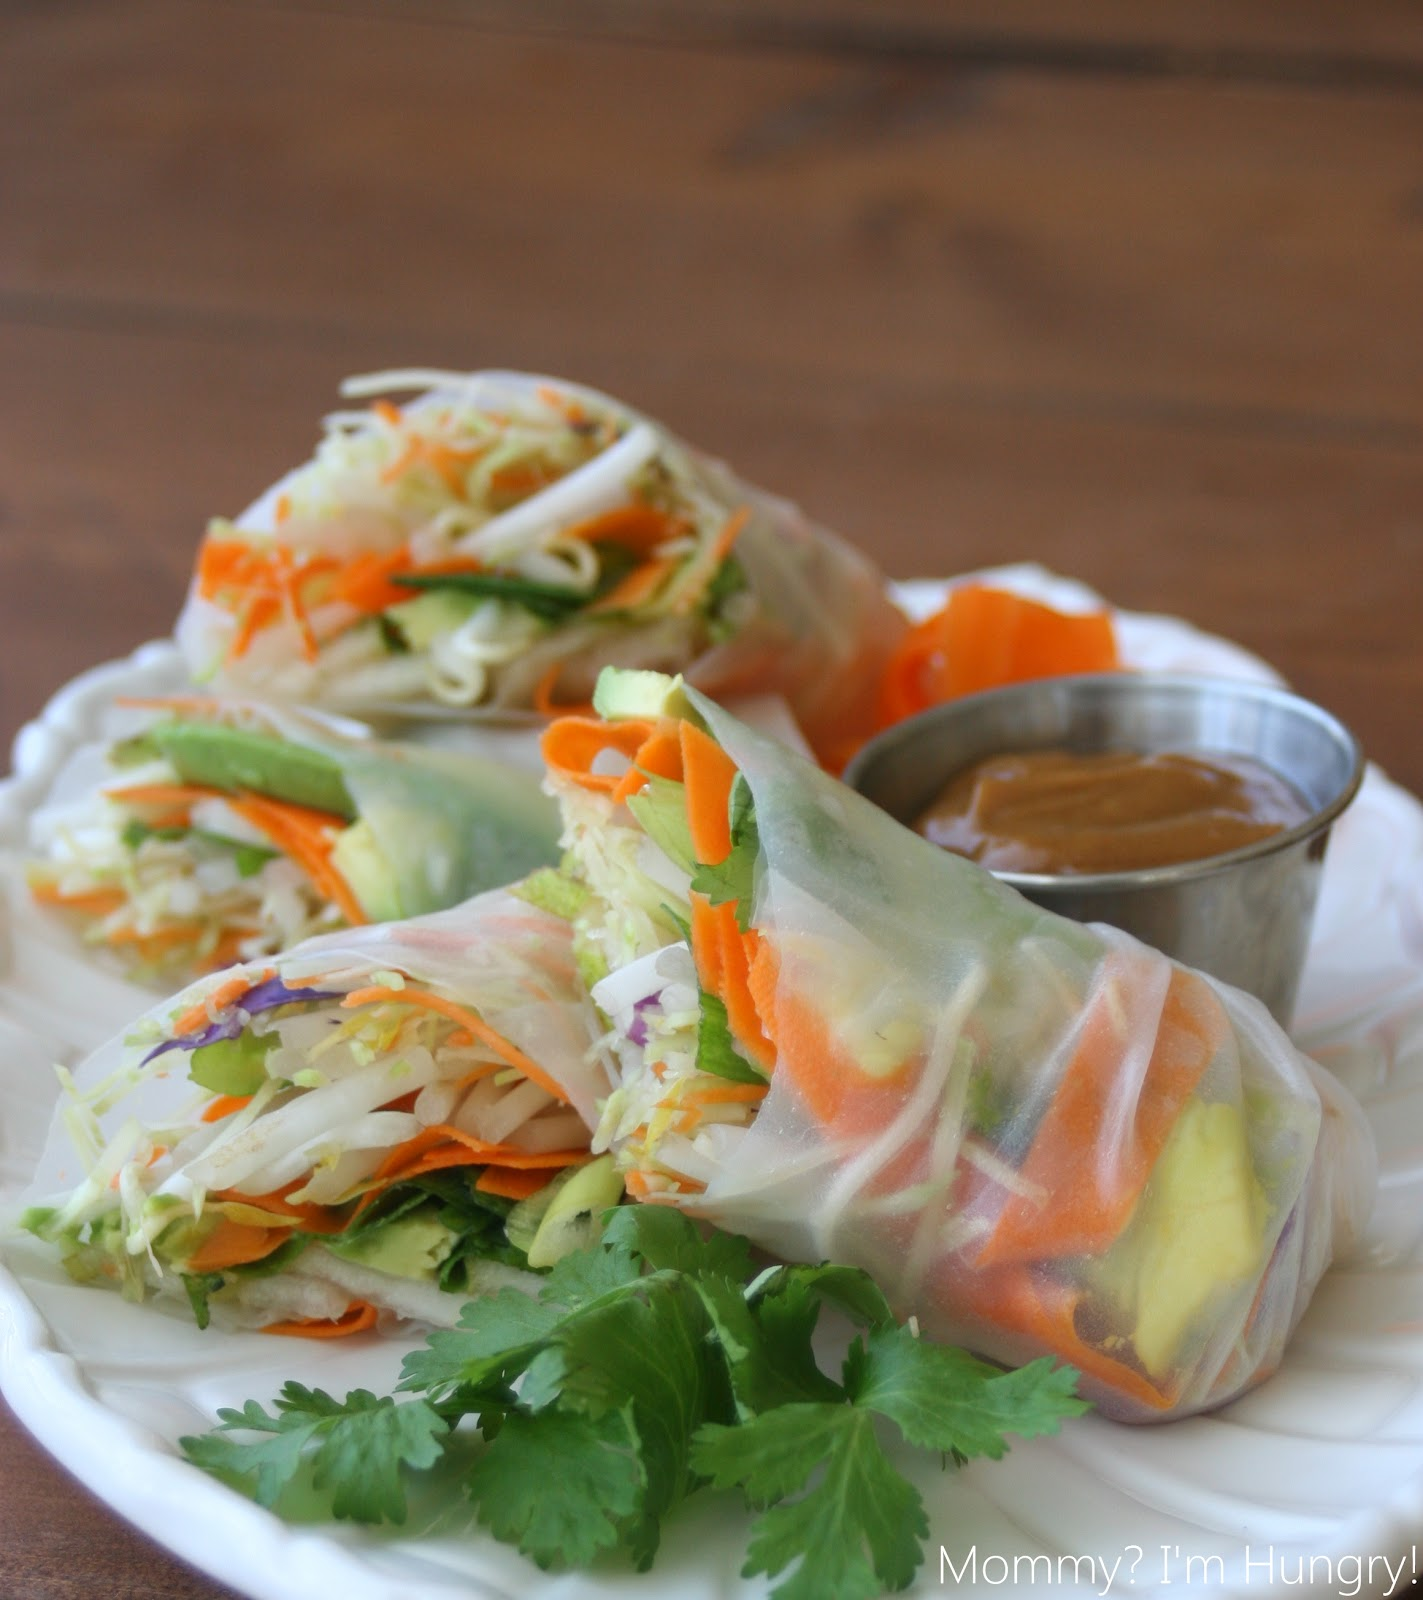 ... : Veggie & Pear Spring Rolls with a Spicy Peanut Butter Dipping Sauce